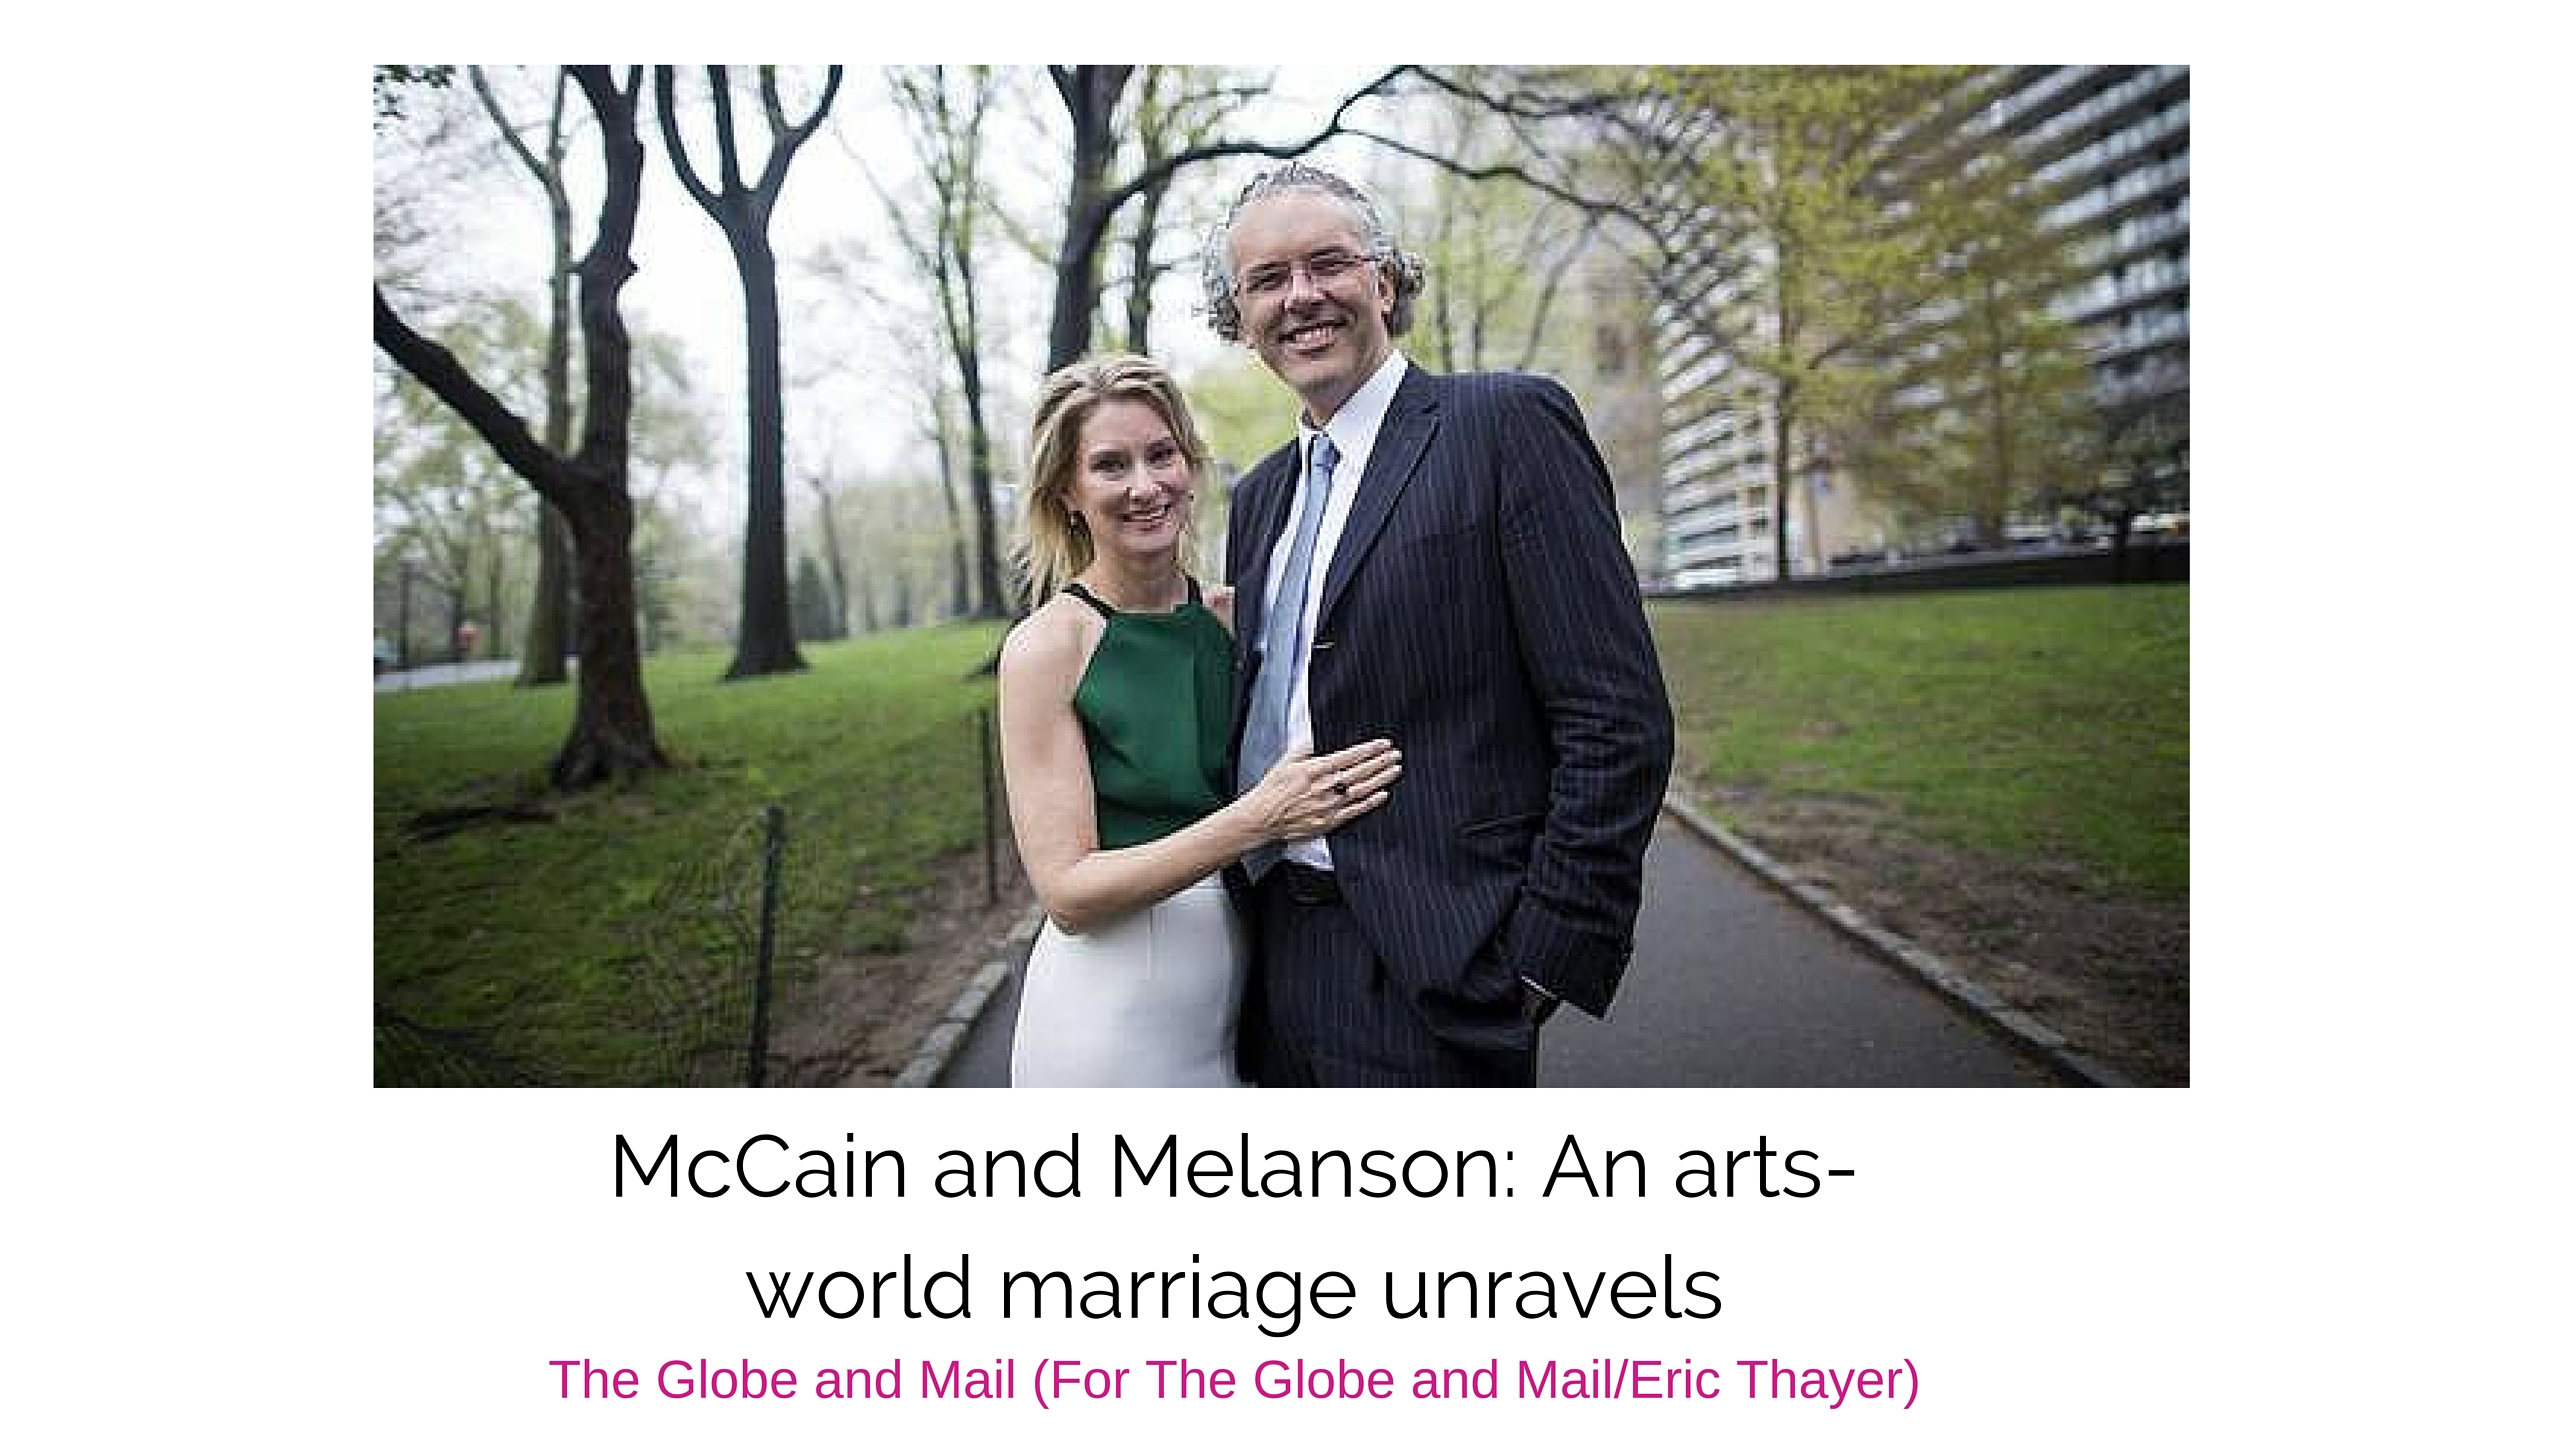 After a whirlwind romance, Jeff Melanson and Eleanor McCain wed in April, 2014, shortly before they were photographed in New York. (For The Globe and Mail/Eric Thayer)